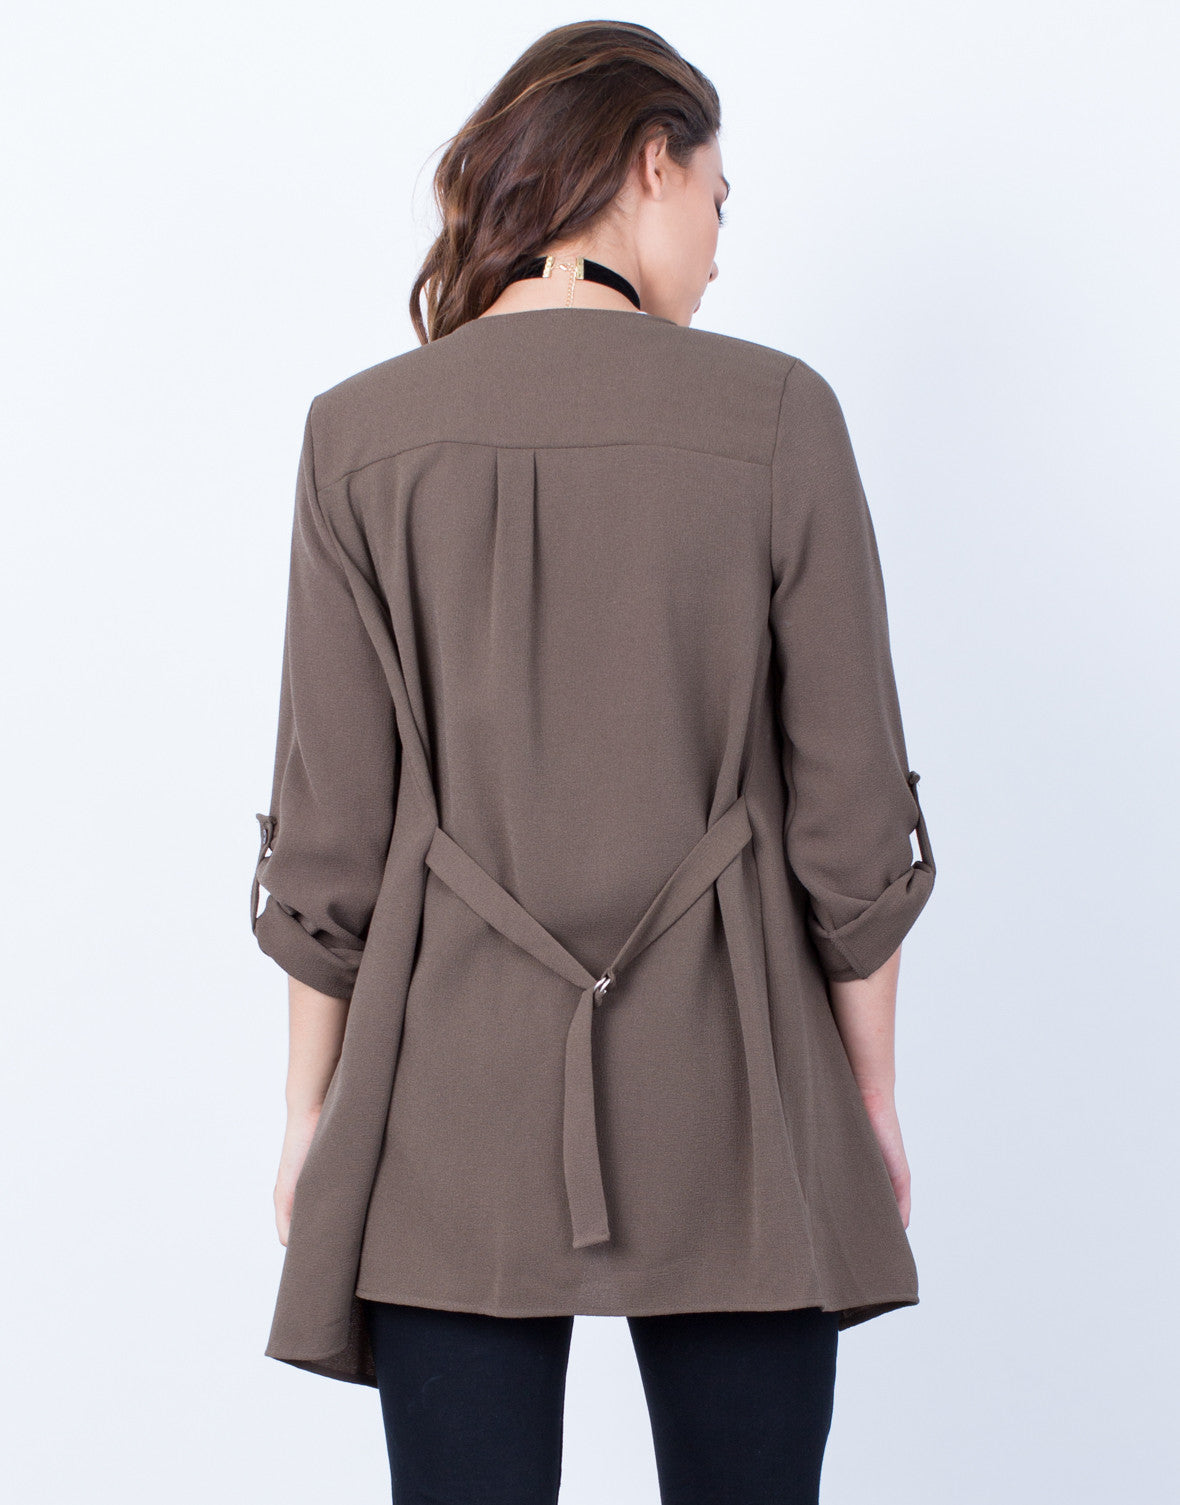 Back View of Flowy Open Cardigan